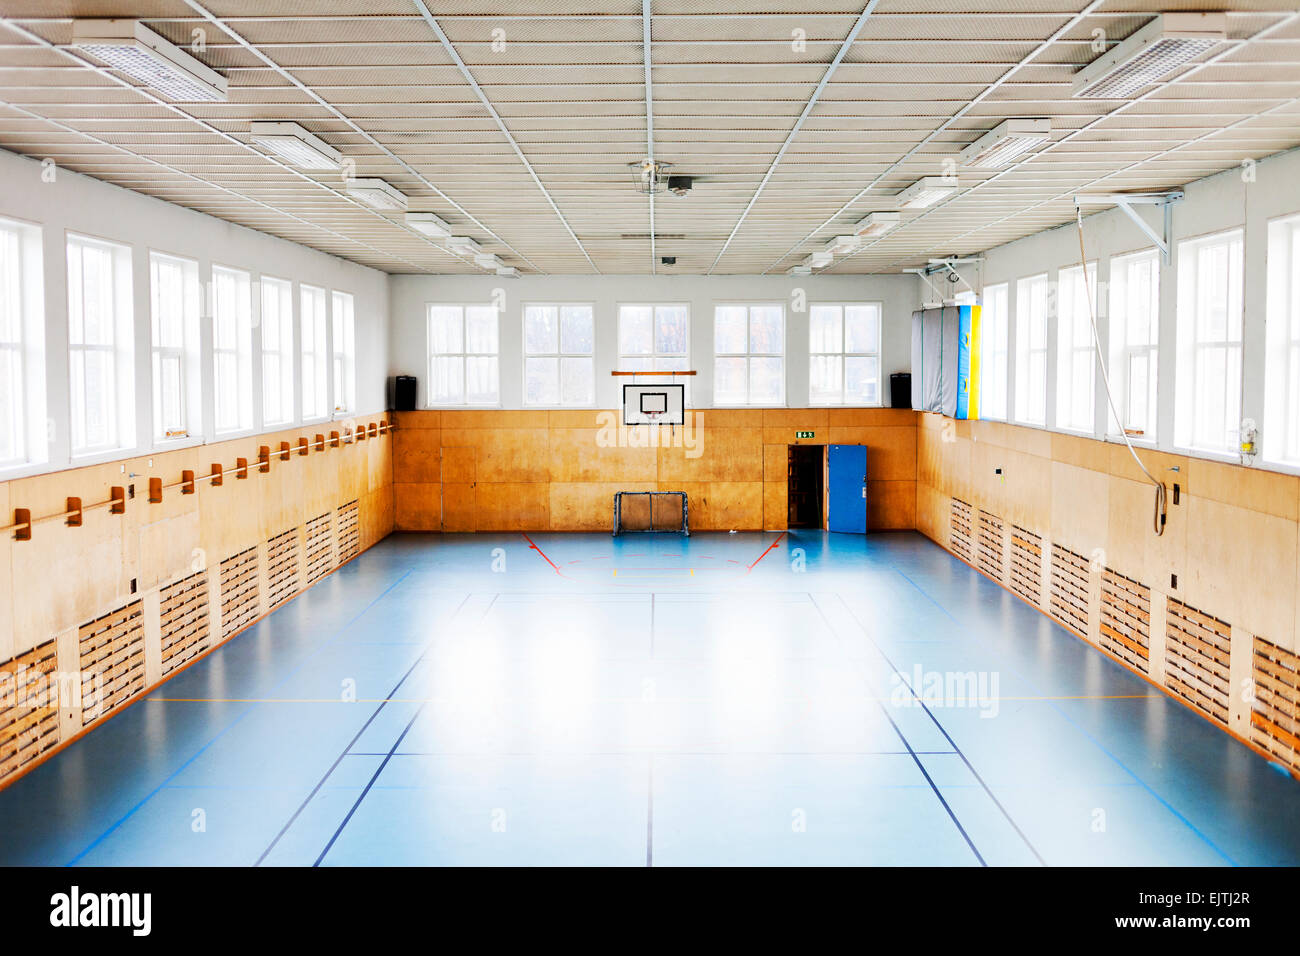 Empty indoor basketball court Stock Photo, Royalty Free Image ...